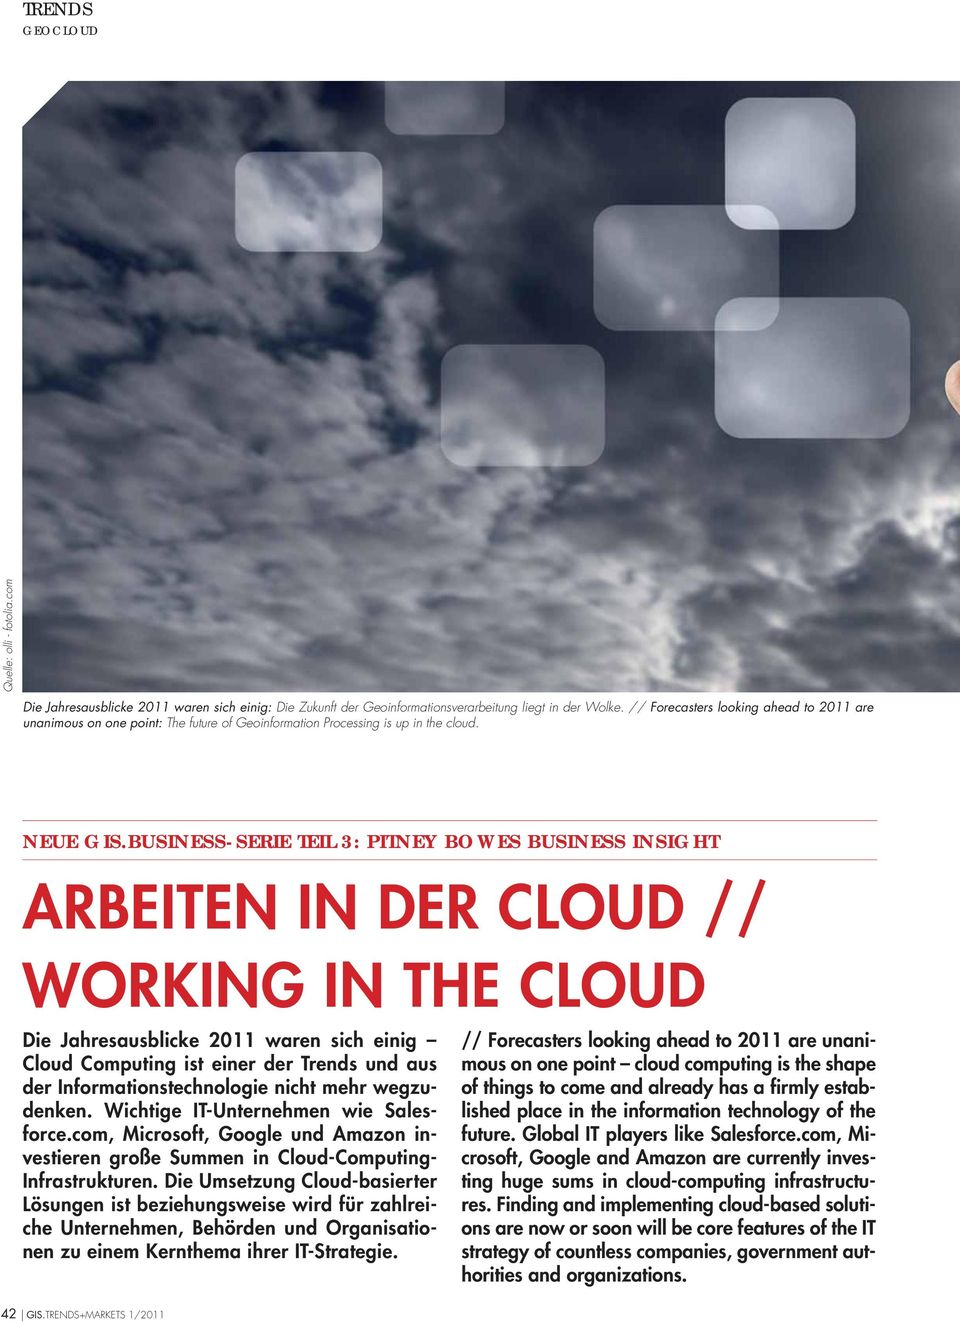 BUSINESS-SERIE TEIL 3: PITNEY BOWES BUSINESS INSIGHT ARBEITEN IN DER CLOUD // WORKING IN THE CLOUD Die Jahresausblicke 2011 waren sich einig Cloud Computing ist einer der Trends und aus der